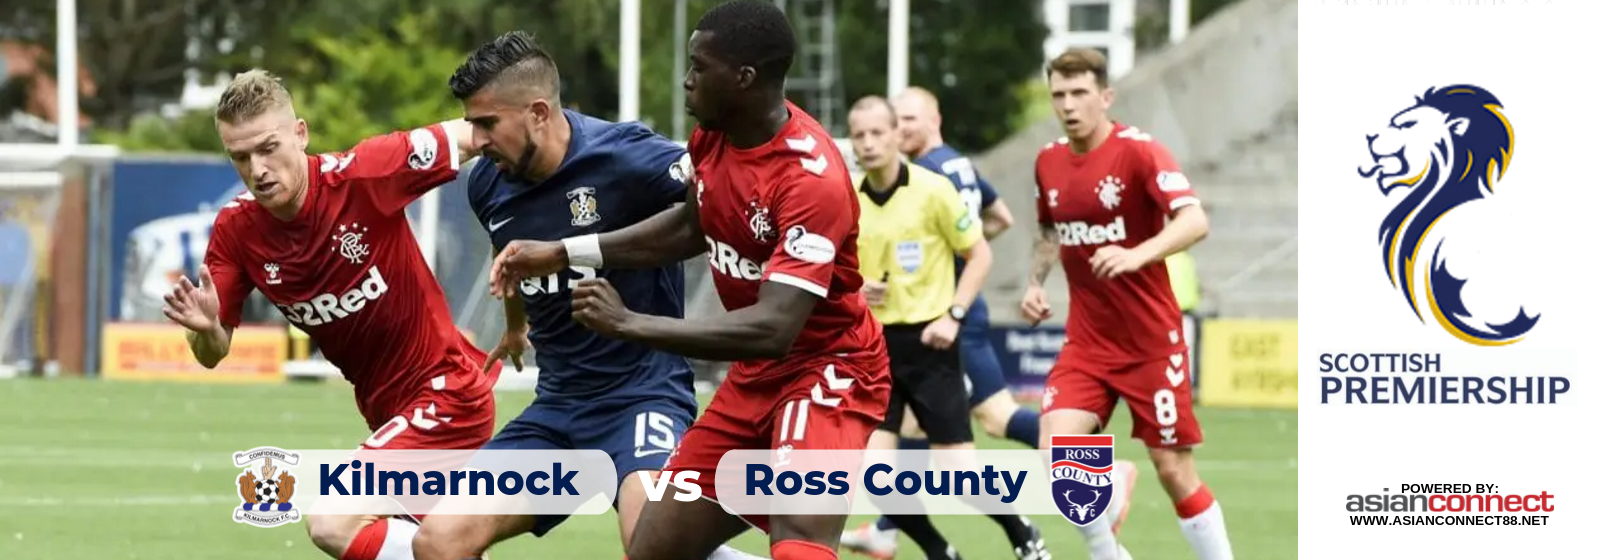 Ross county v kilmarnock betting previews pai gow betting rules on baseball